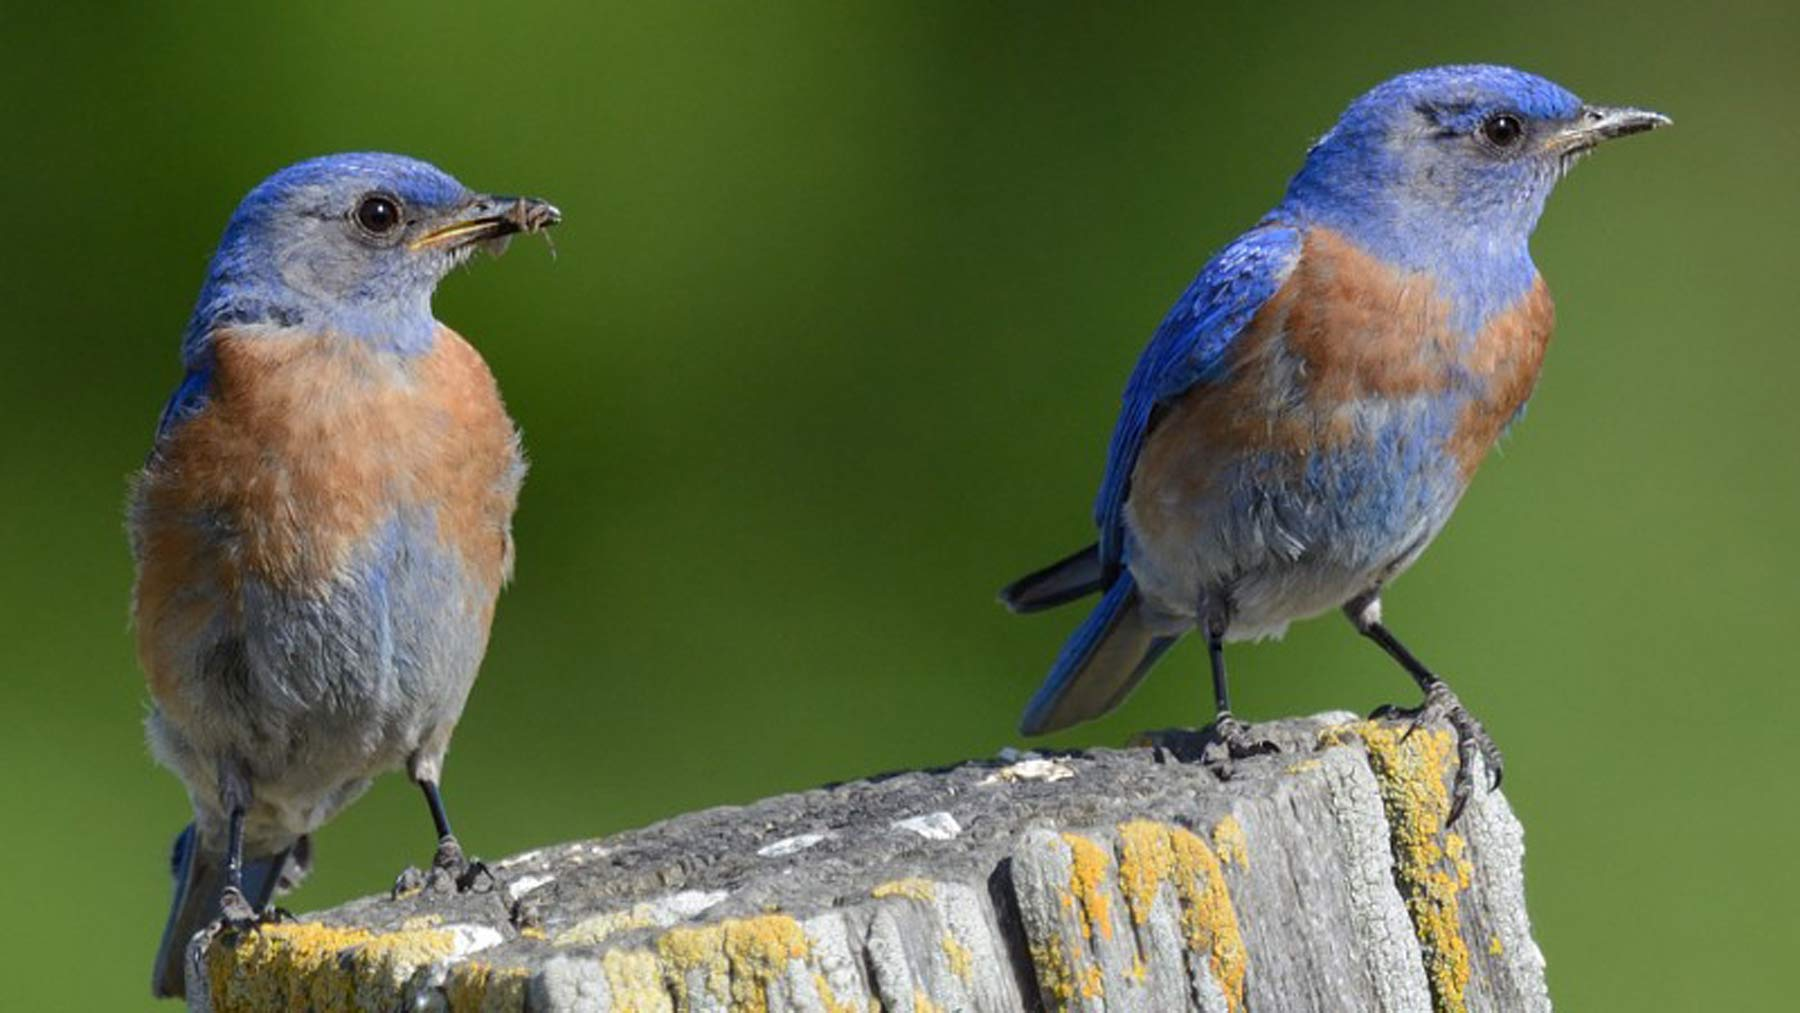 Curiosity Piqued - Western Bluebirds photo courtesy of Napa Audubon Society